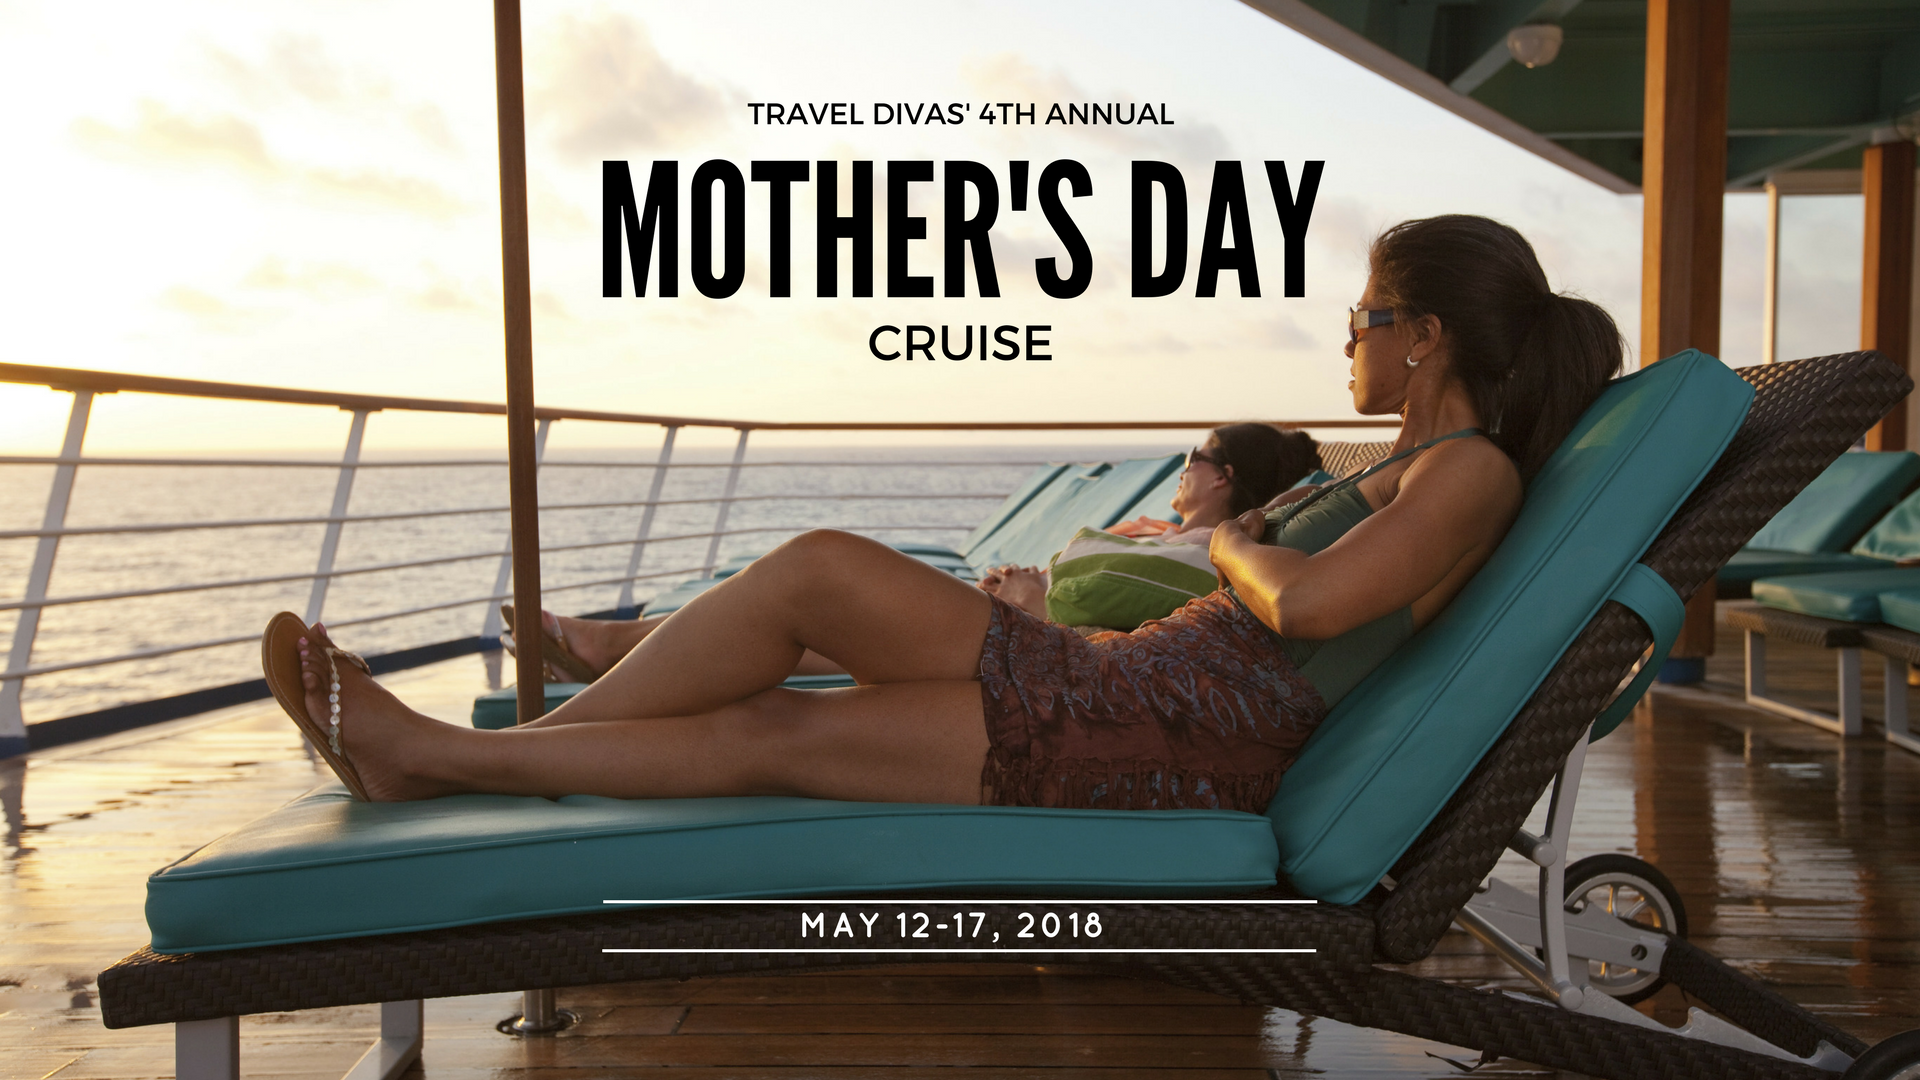 Mother's Day Cruise 2018 - The Travel Divas